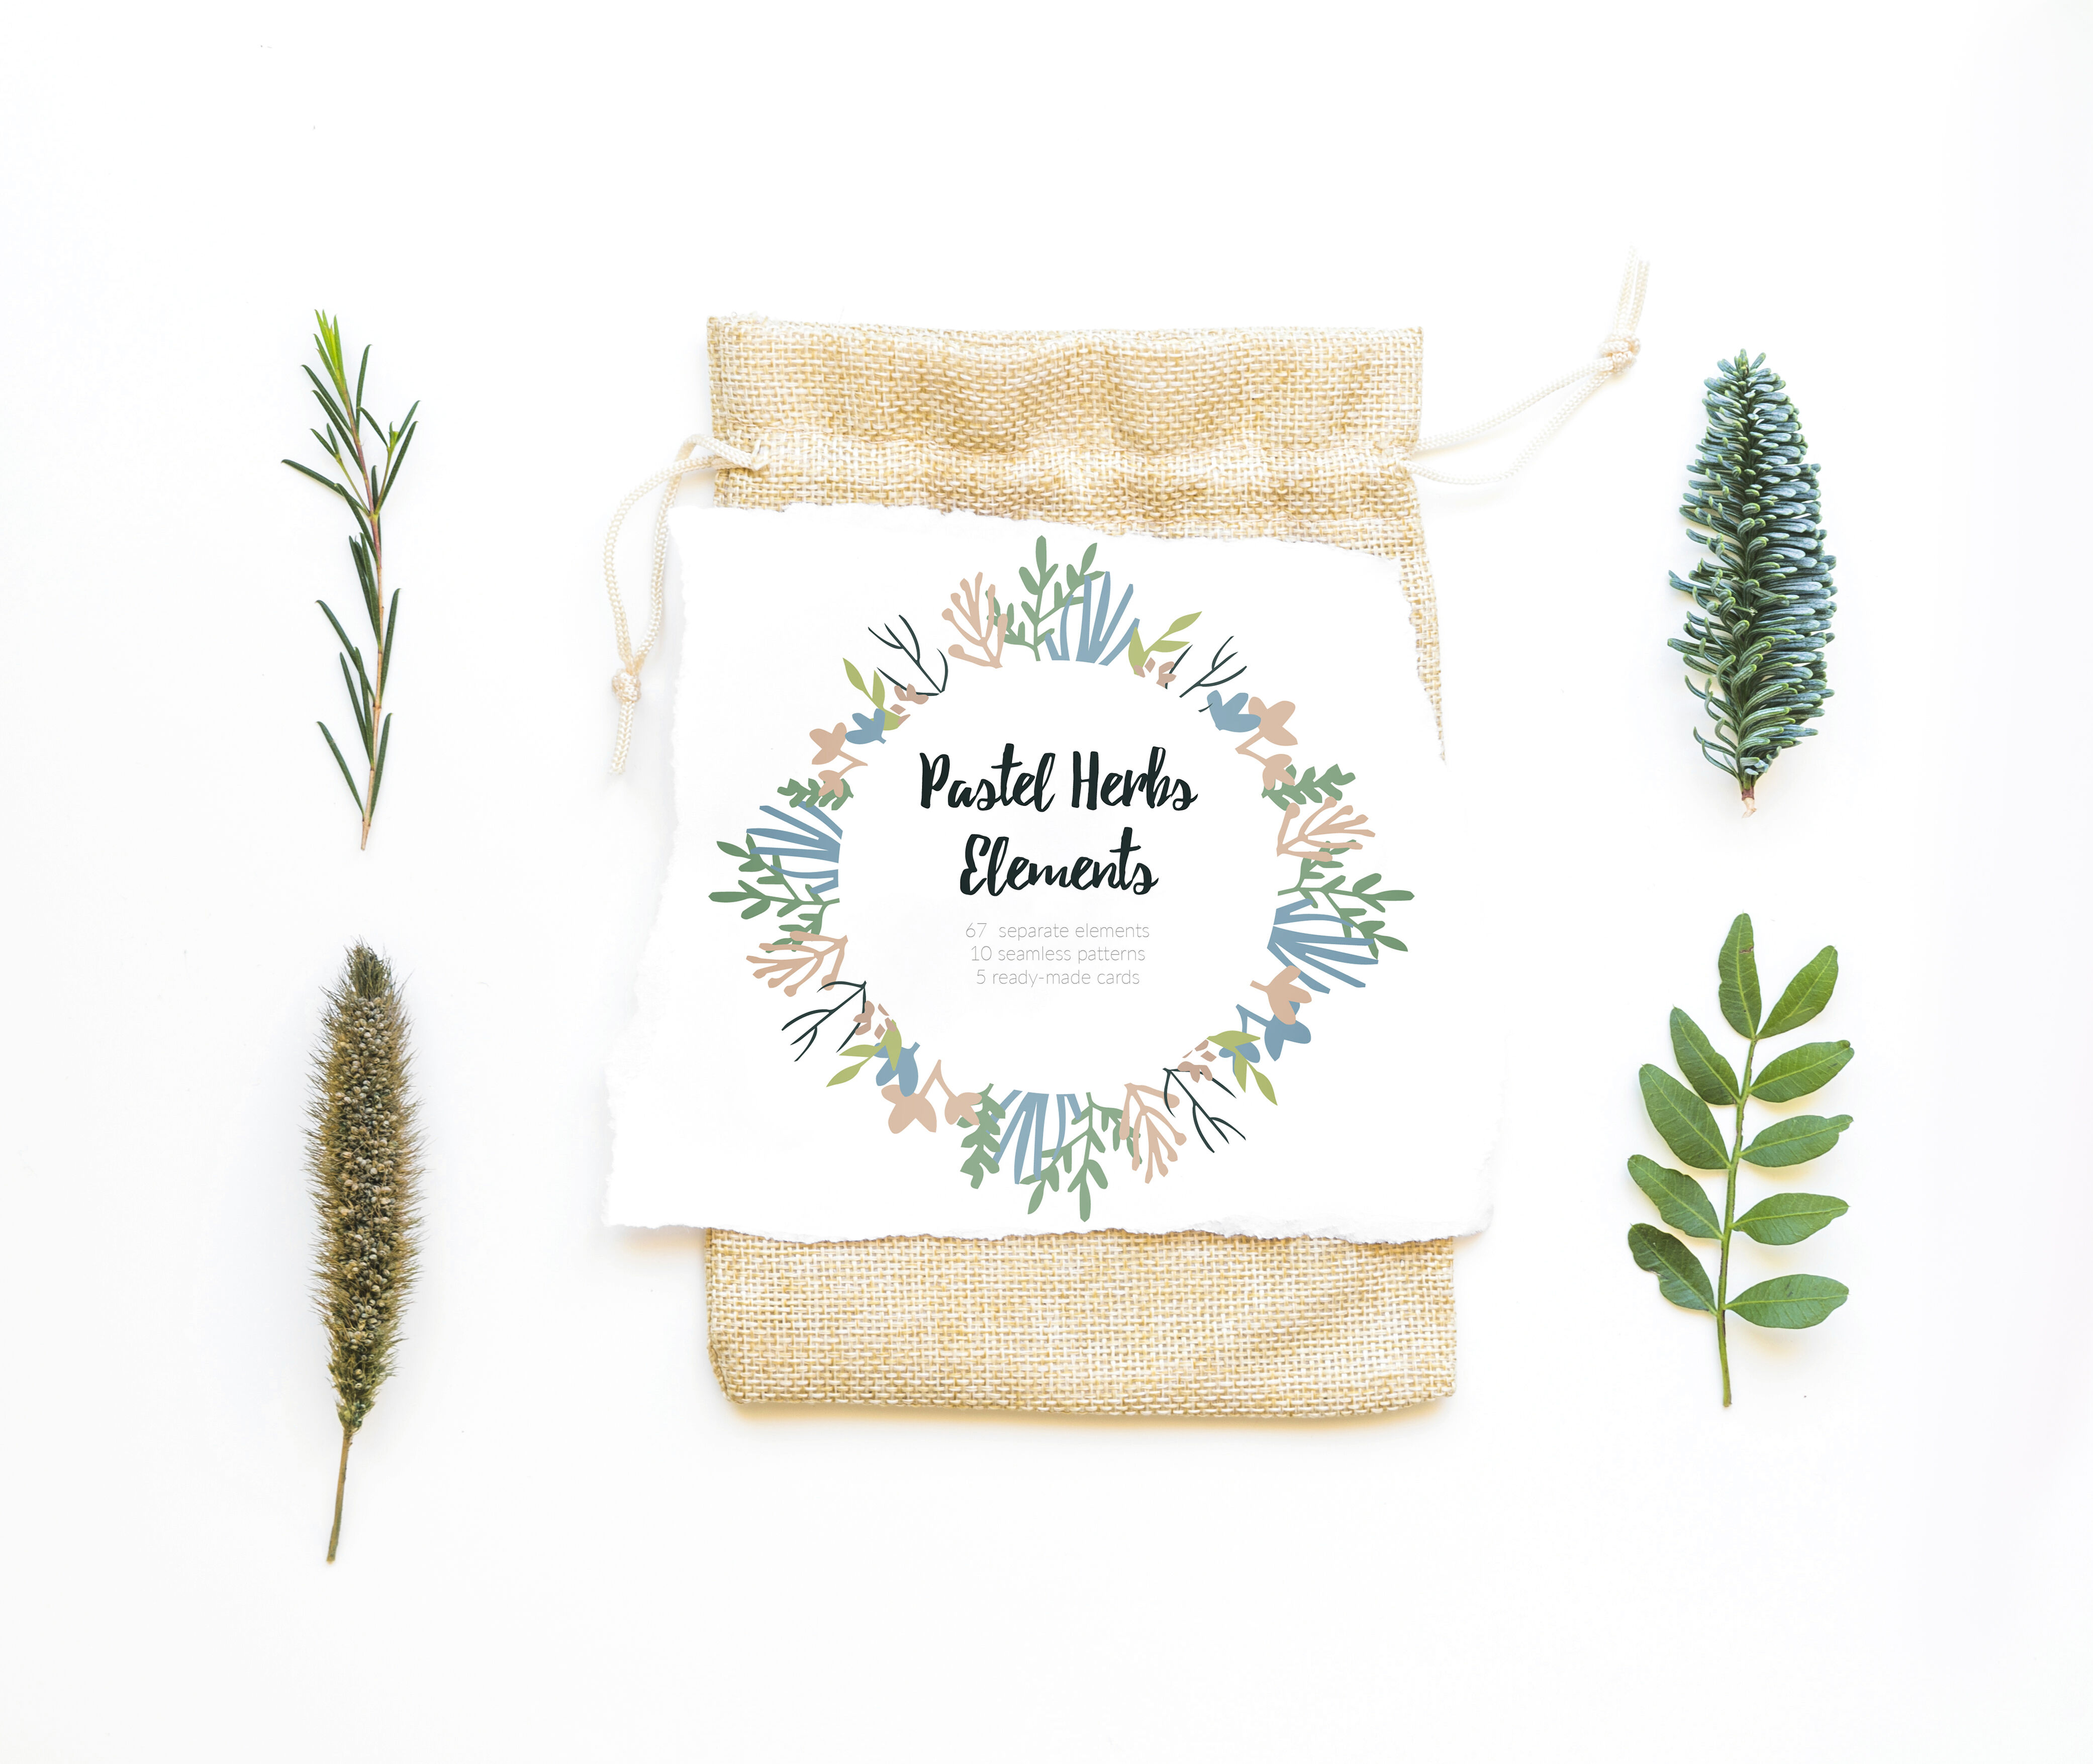 Pastel Herbs Vector Elements By Annk Art Thehungryjpeg Com